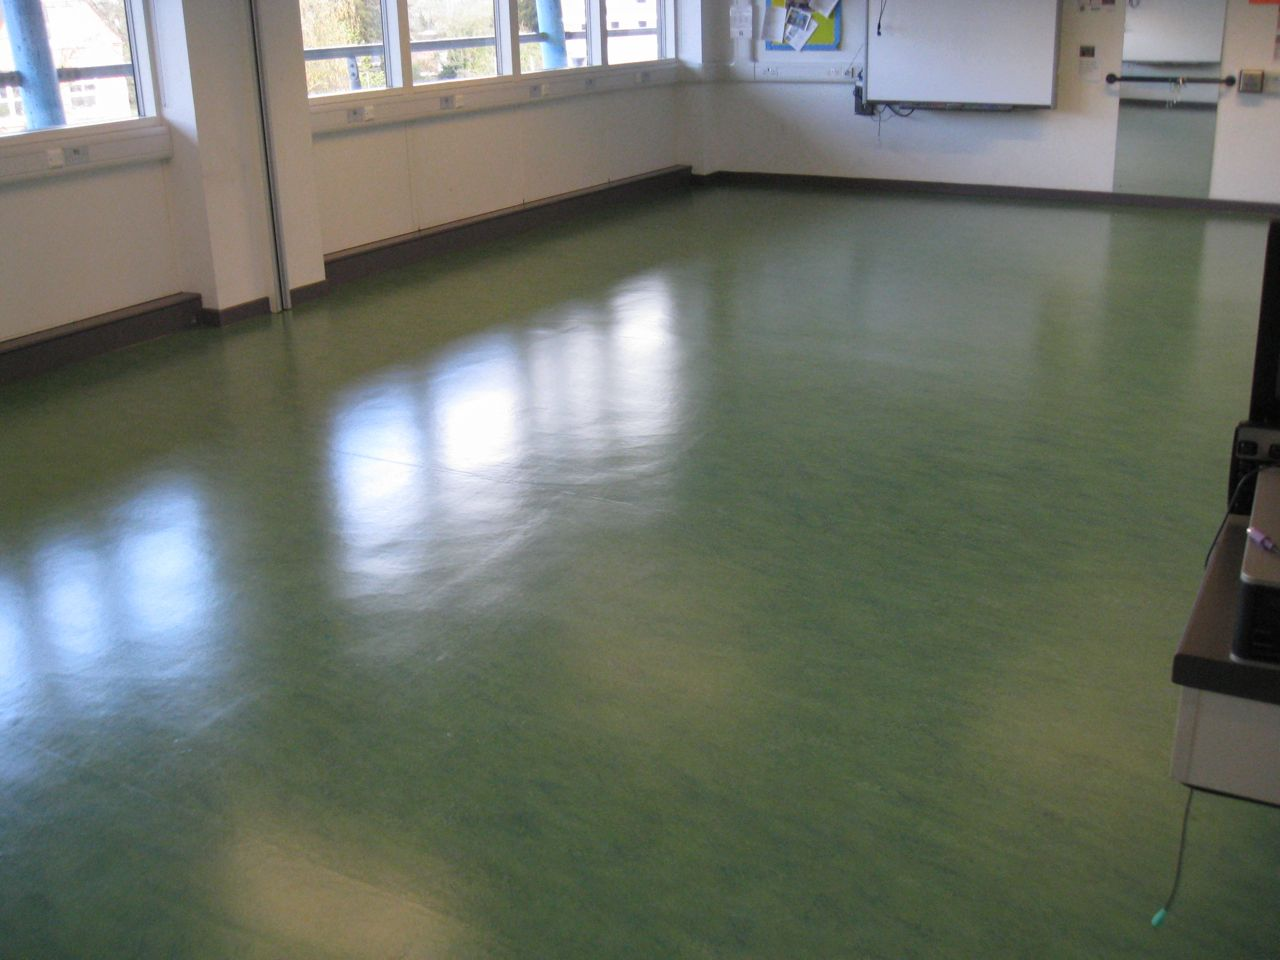 Unique Floorcare Products For Sale - Shiny lino flooring